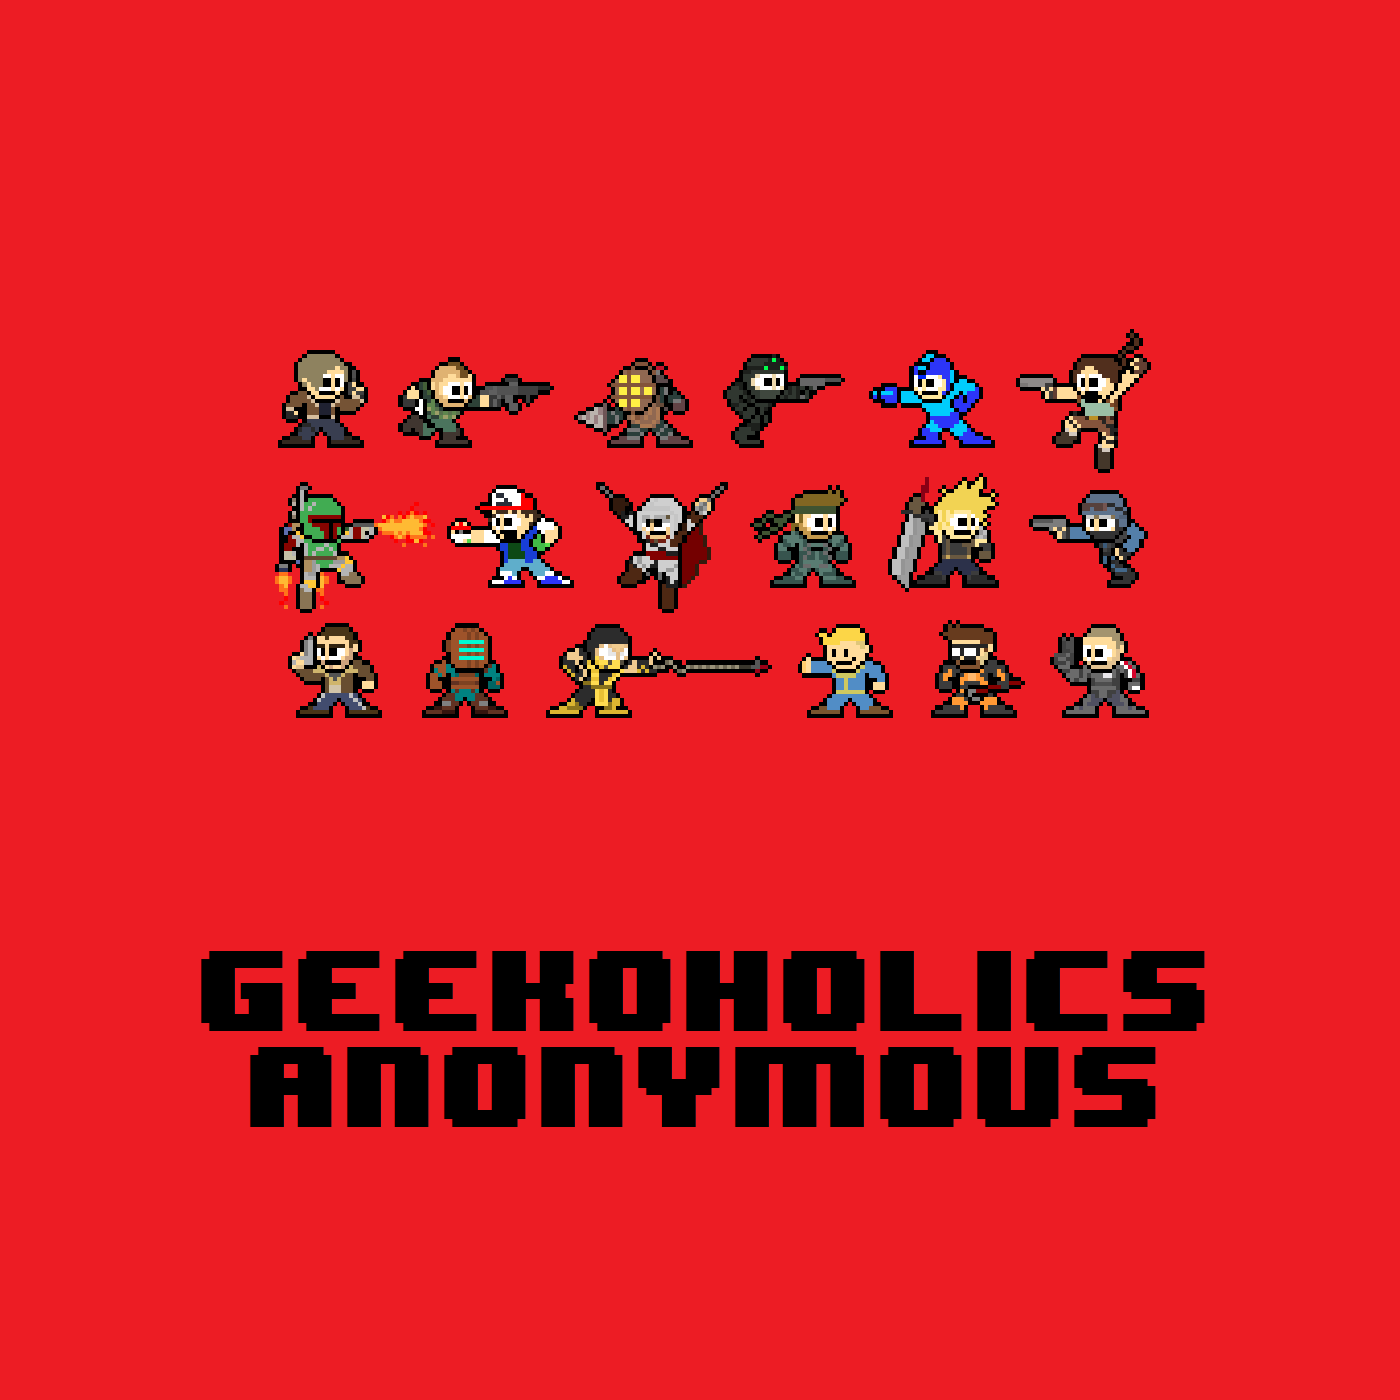 Nintendo Switch OLED Model, State of Play and more - Geekoholics Anonymous Podcast 313 show art